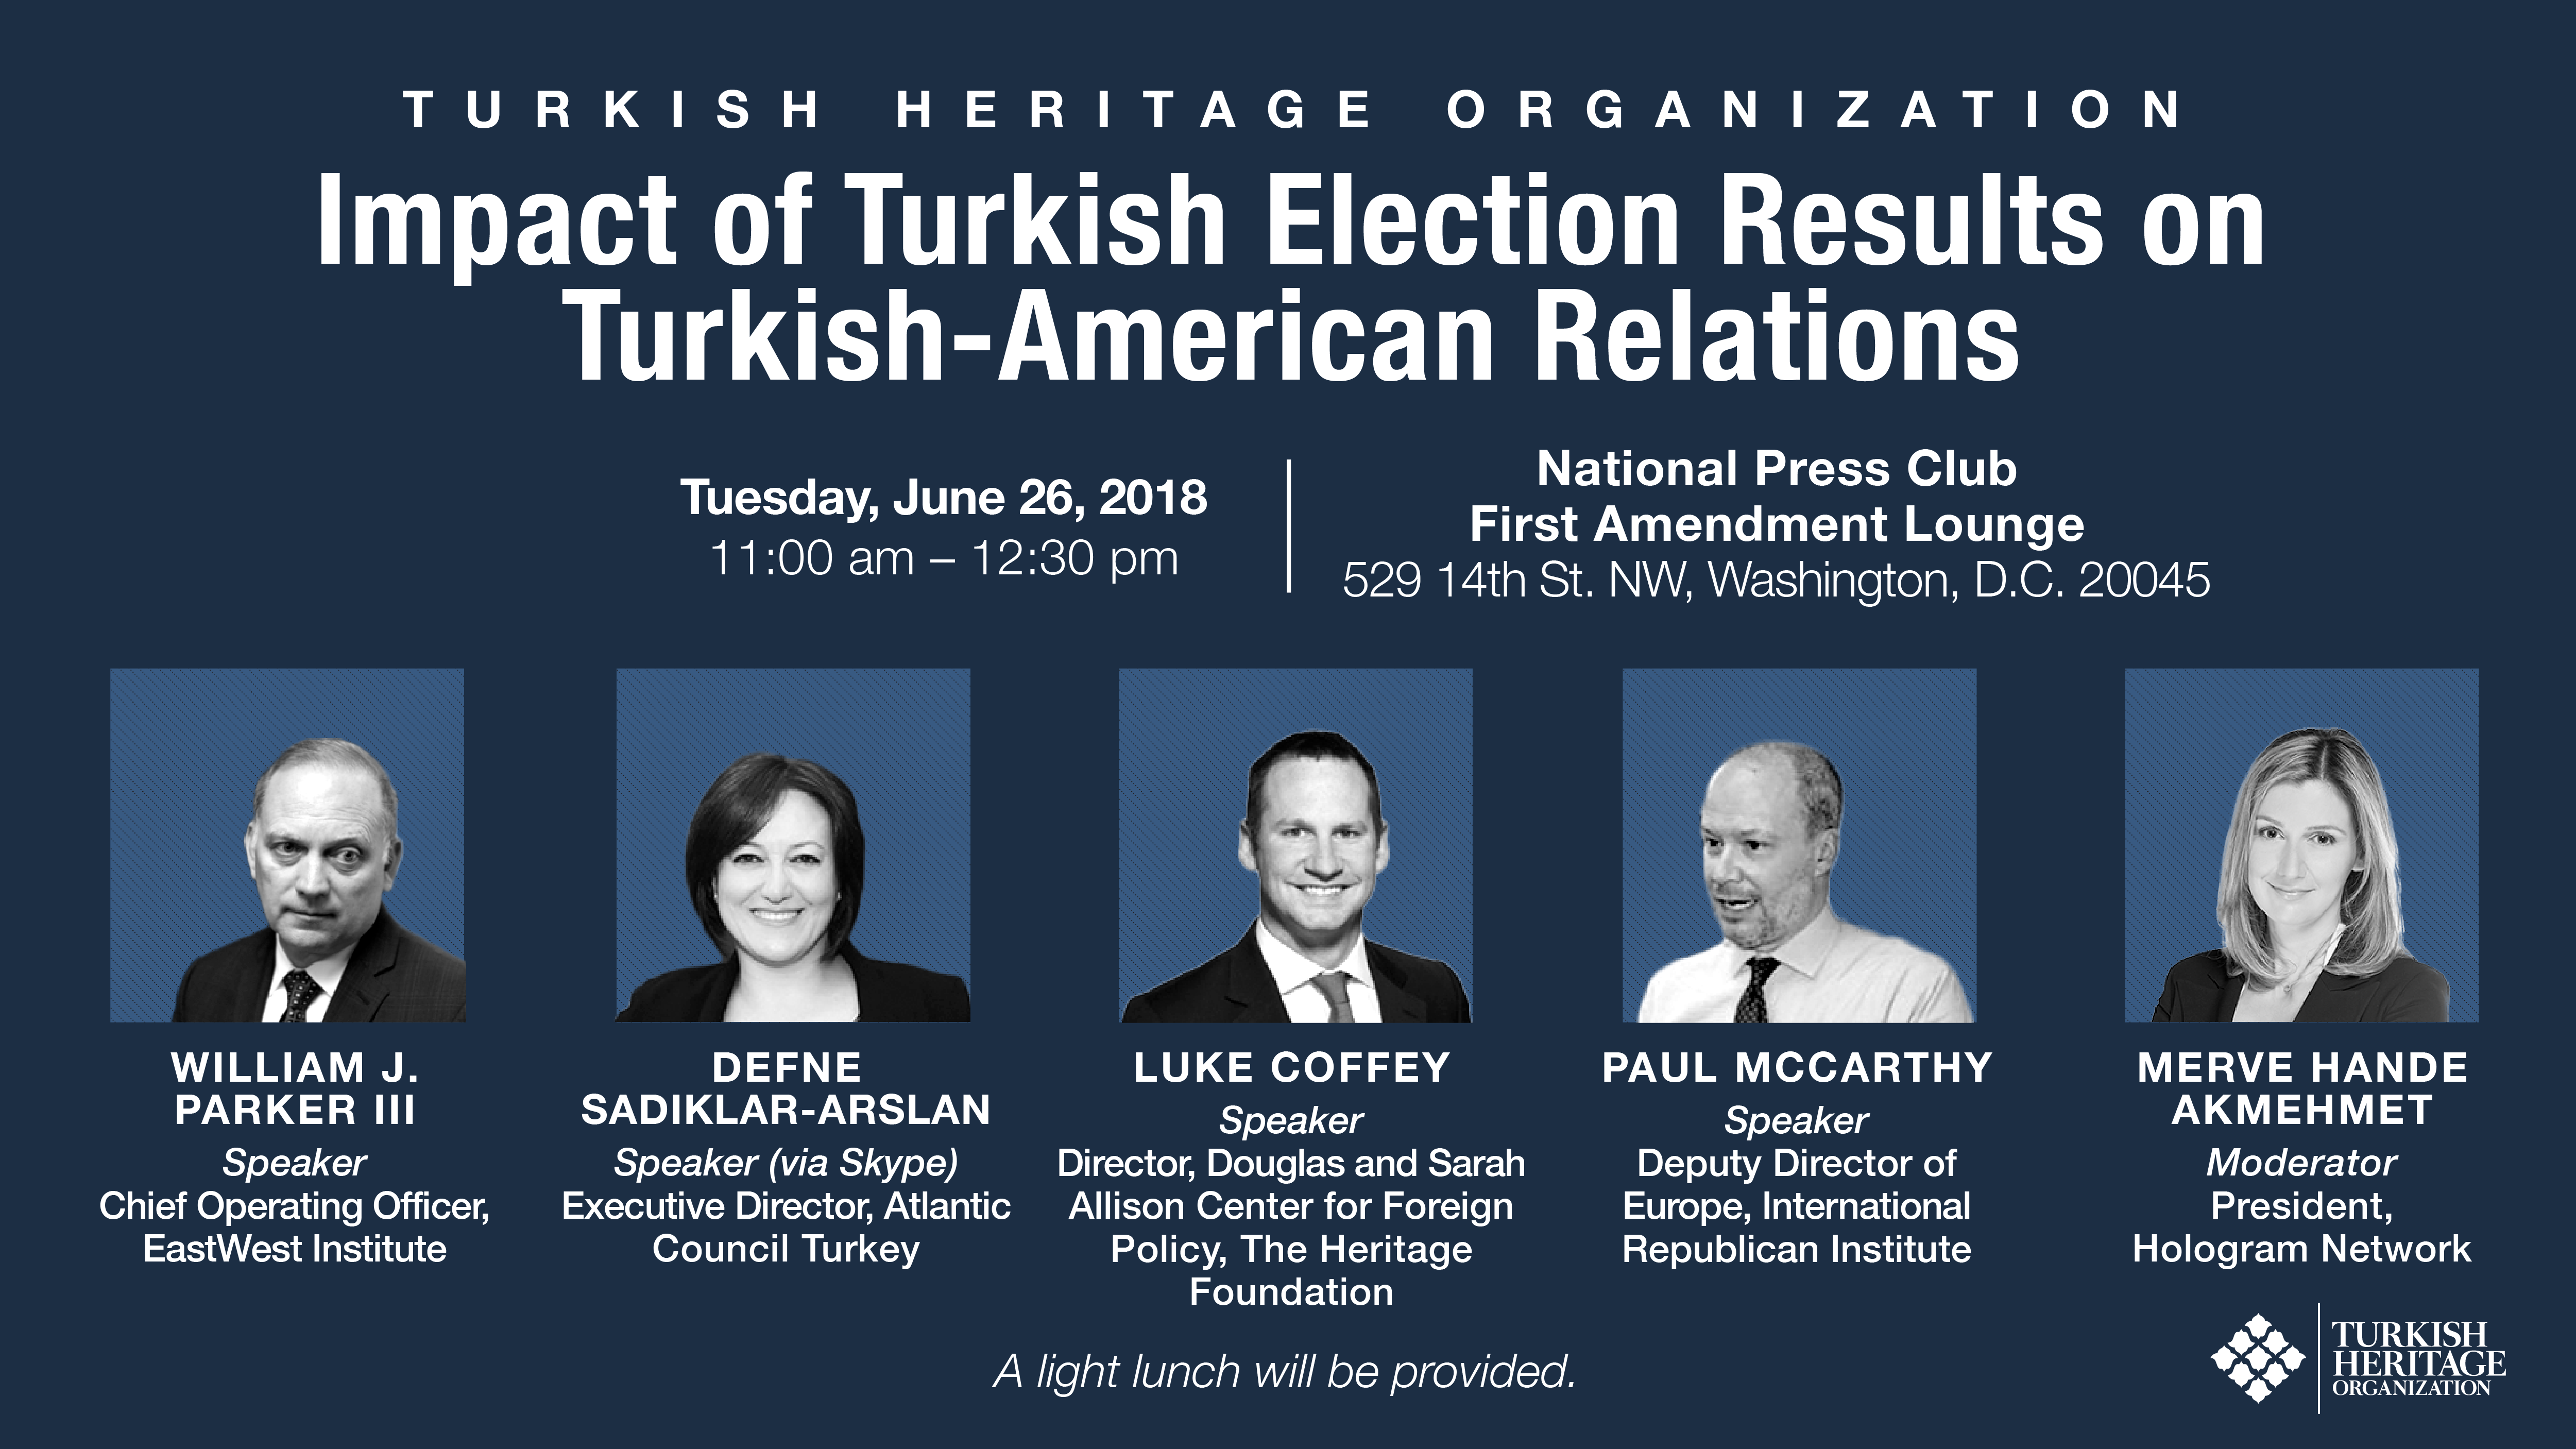 Impact of Turkish Election Results on U.S.-TR Relations